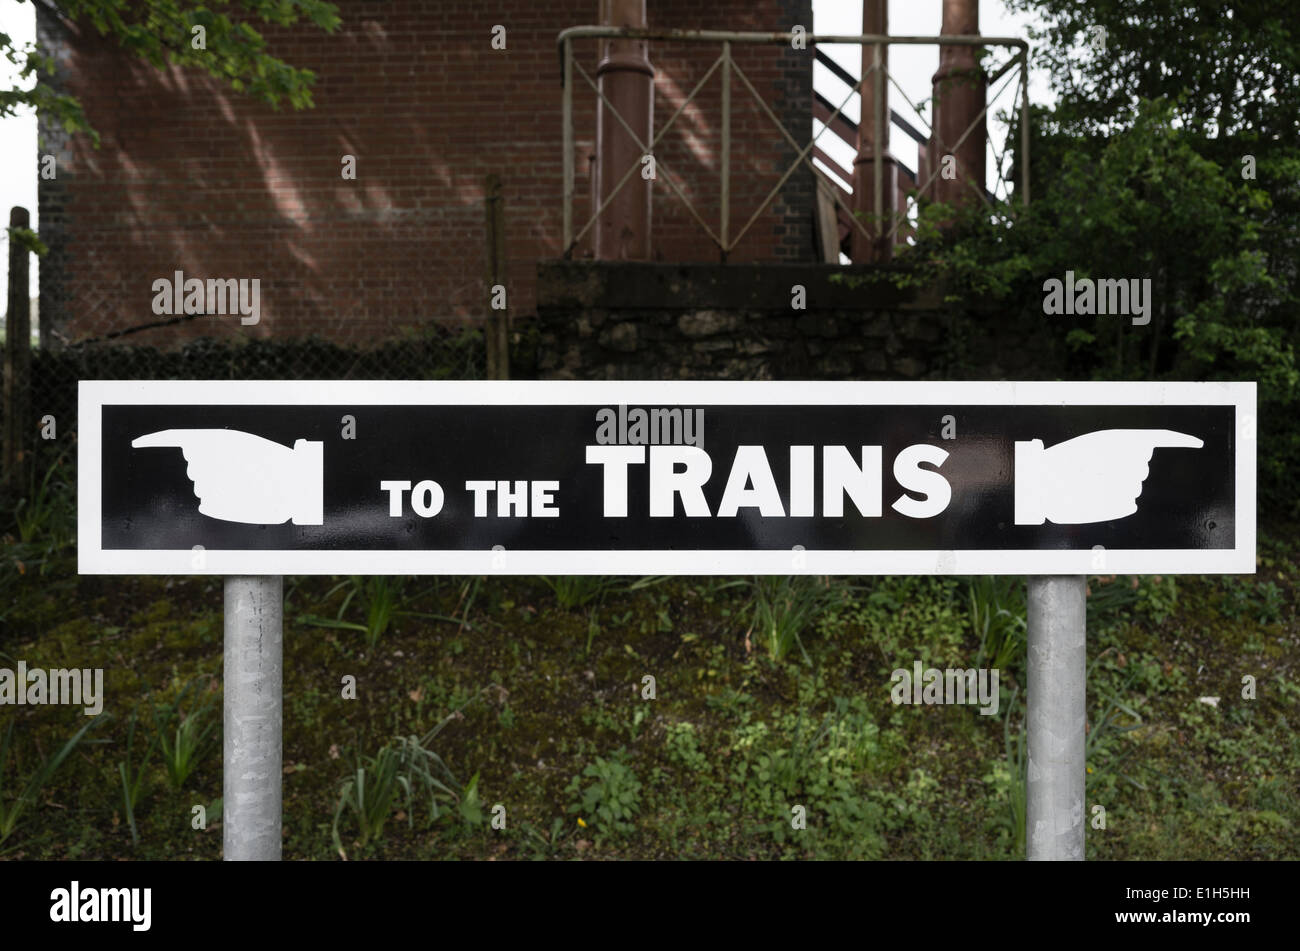 Ambiguous sign pointing two directions to the trains in UK - Stock Image